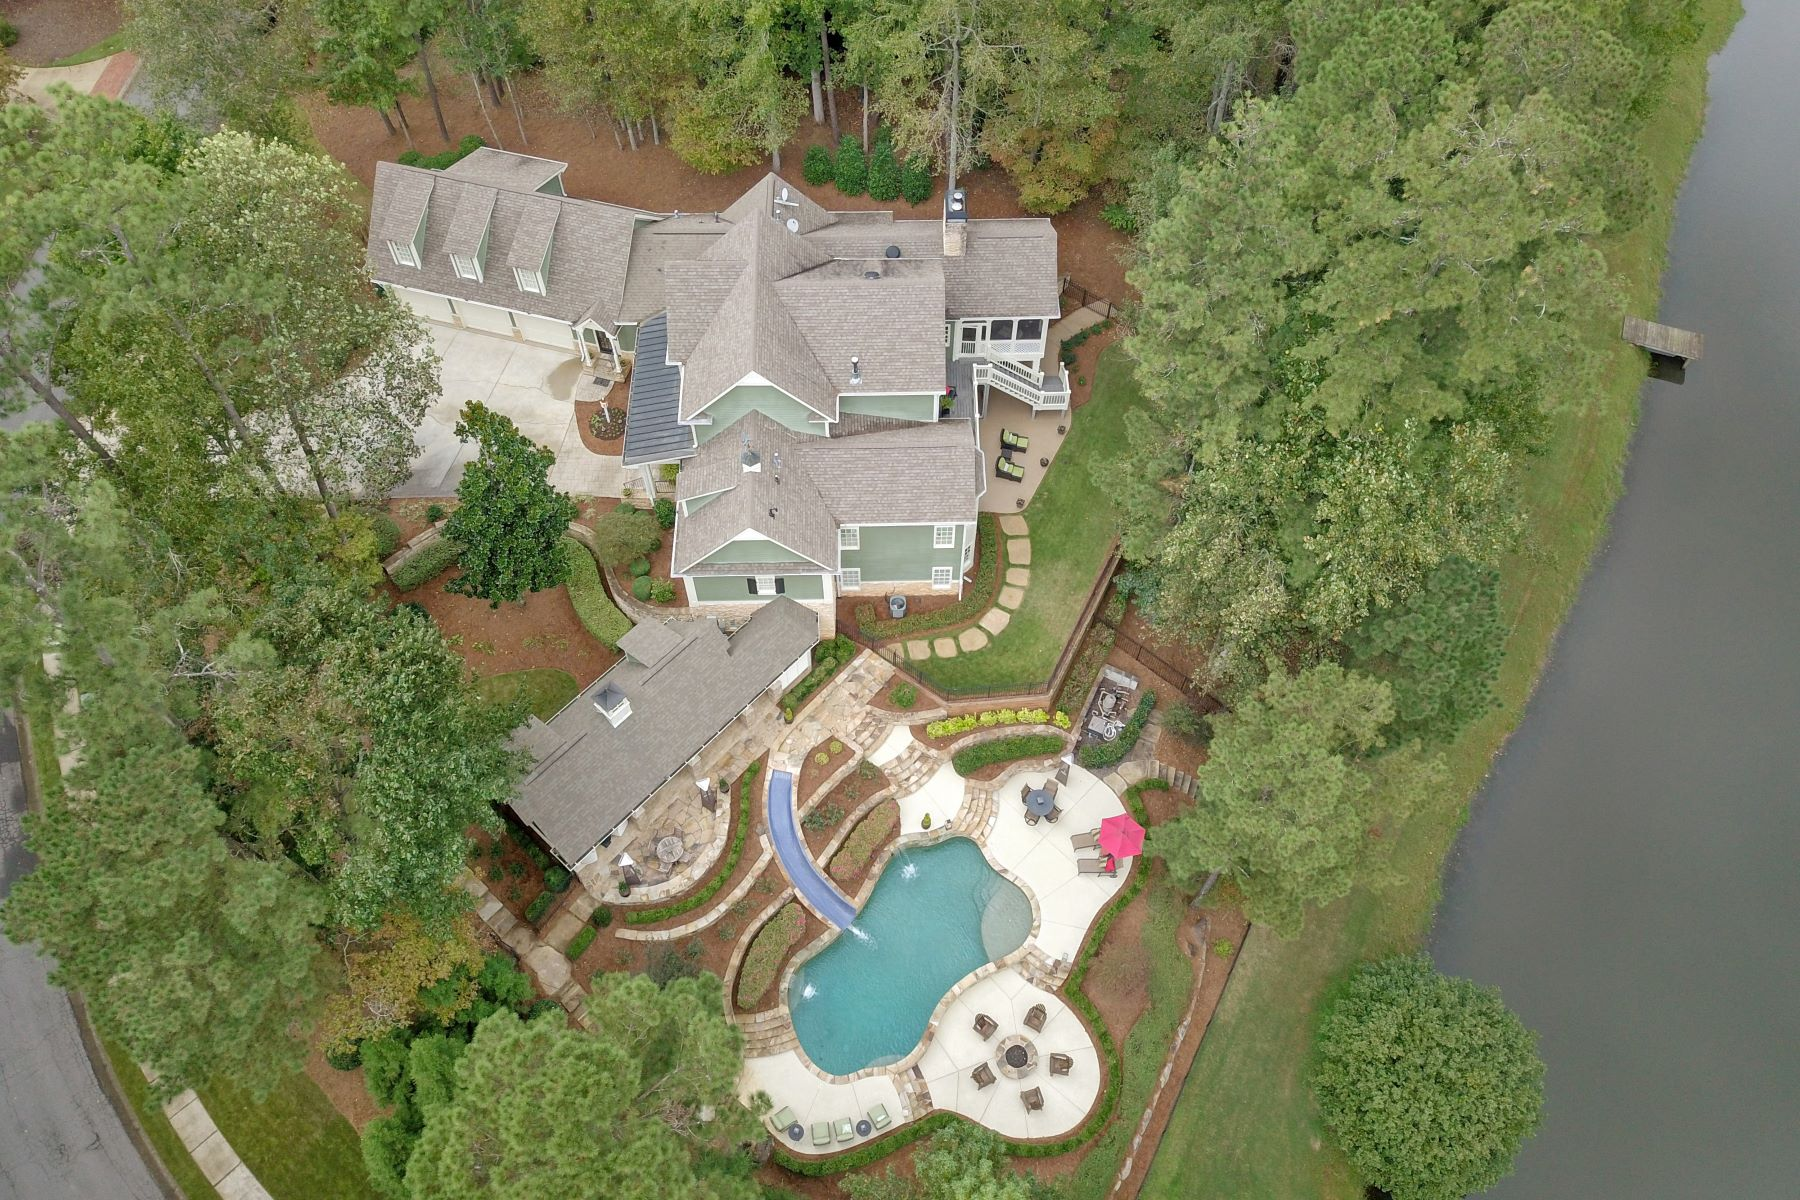 Single Family Home for Sale at Gorgeous Southern Living Executive Home Nestled On a Private Lakefront Lot! 2825 Tanner Lake Trl Marietta, Georgia 30064 United States